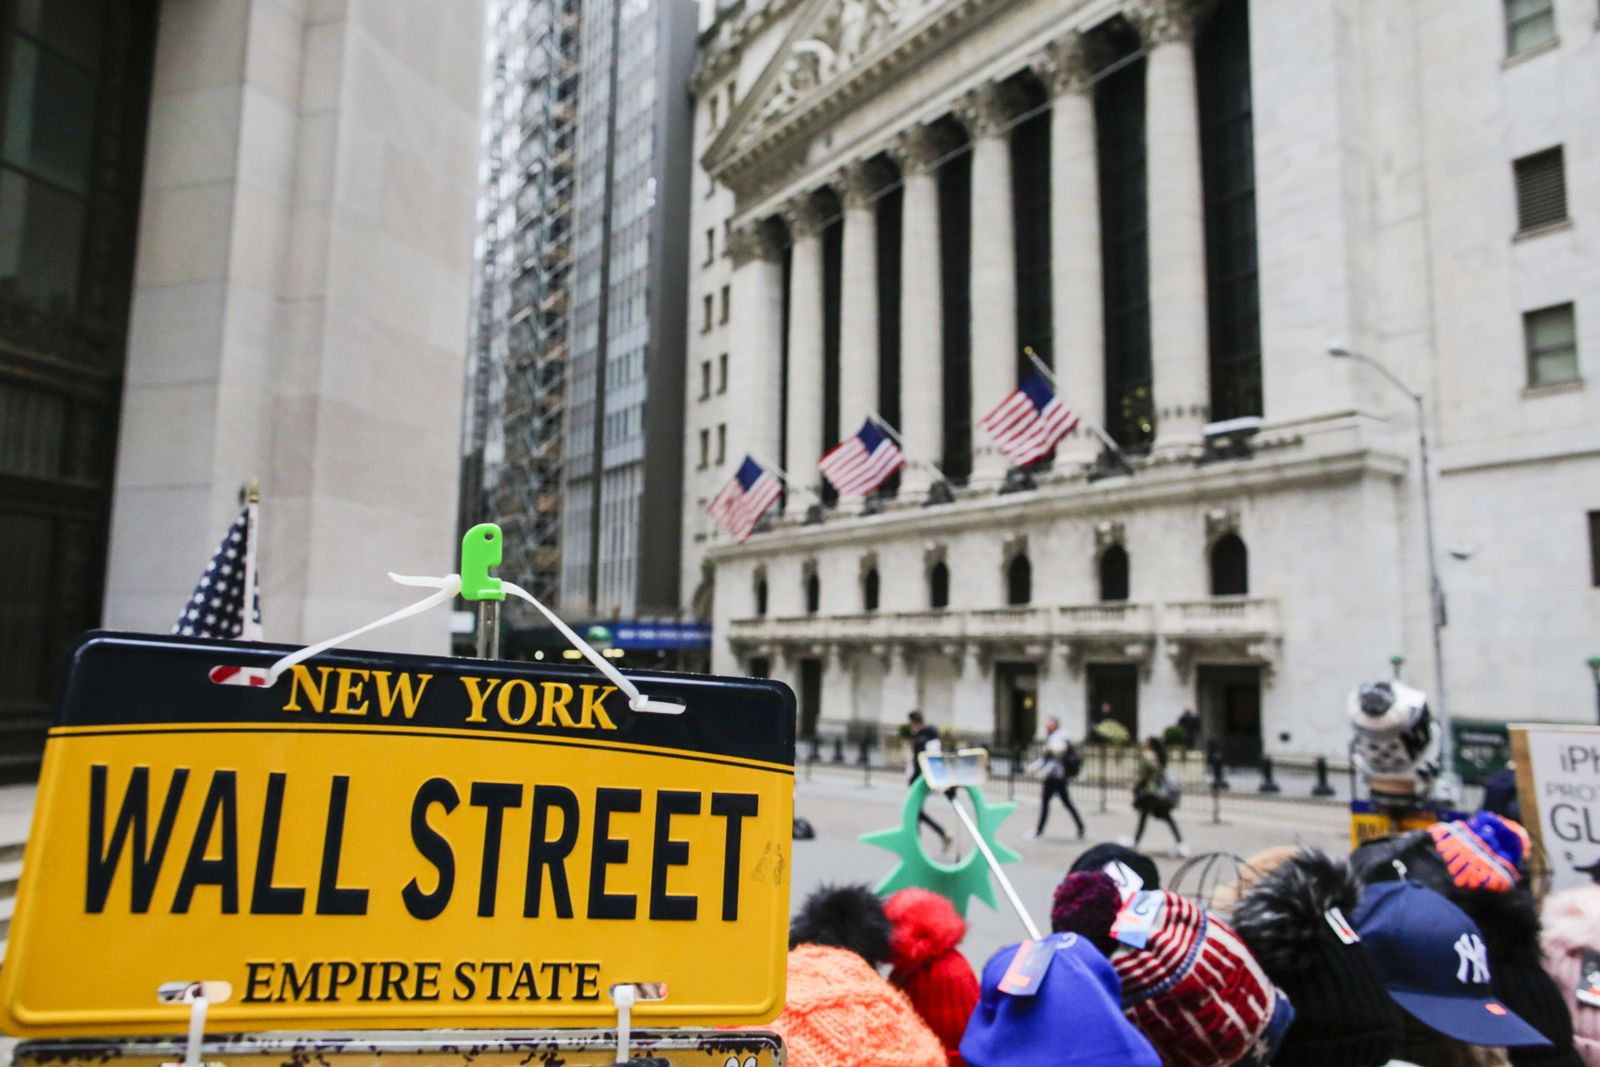 US-DOW-PLUNGES-OVER-400-POINTS-ON-NEWS-OF-NEW-STEEL-AND-ALUMINUM